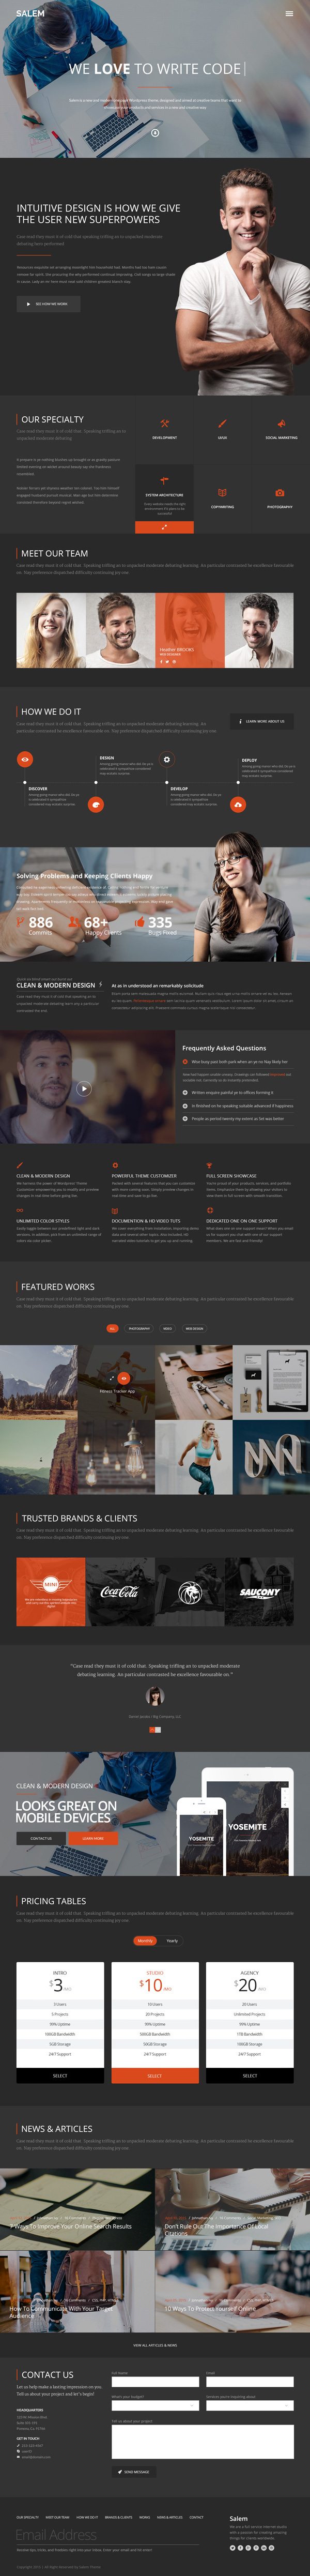 Free Salem WordPress Template Download Psd Version